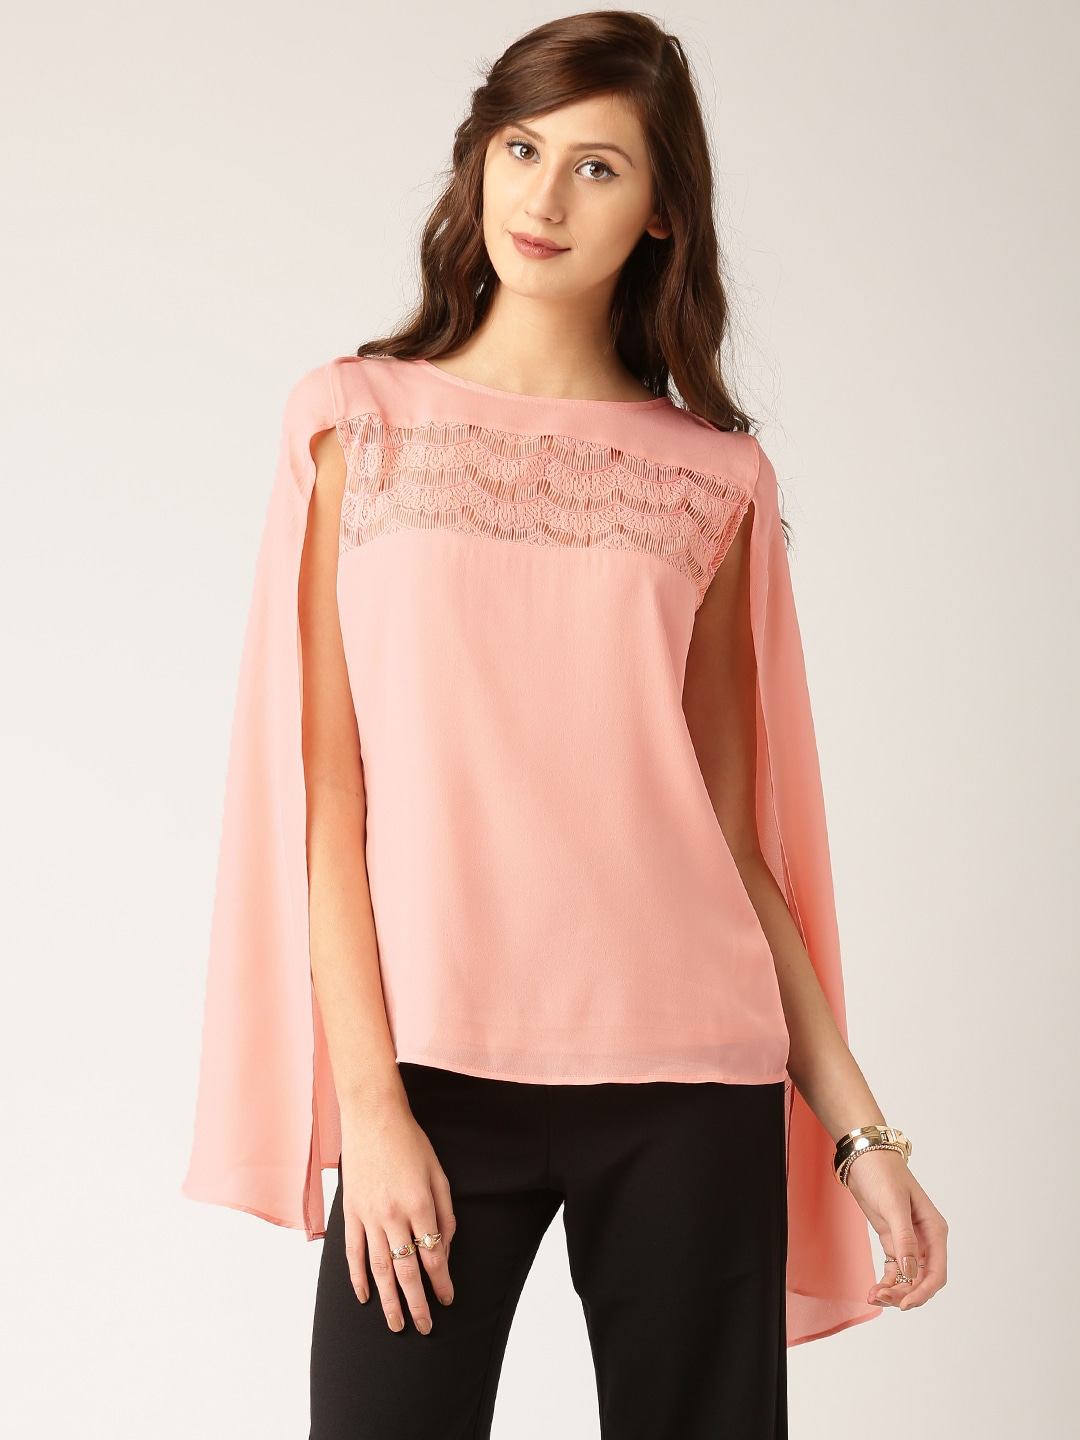 All About You from Deepika Padukone Peach-Coloured Lace Cape Top